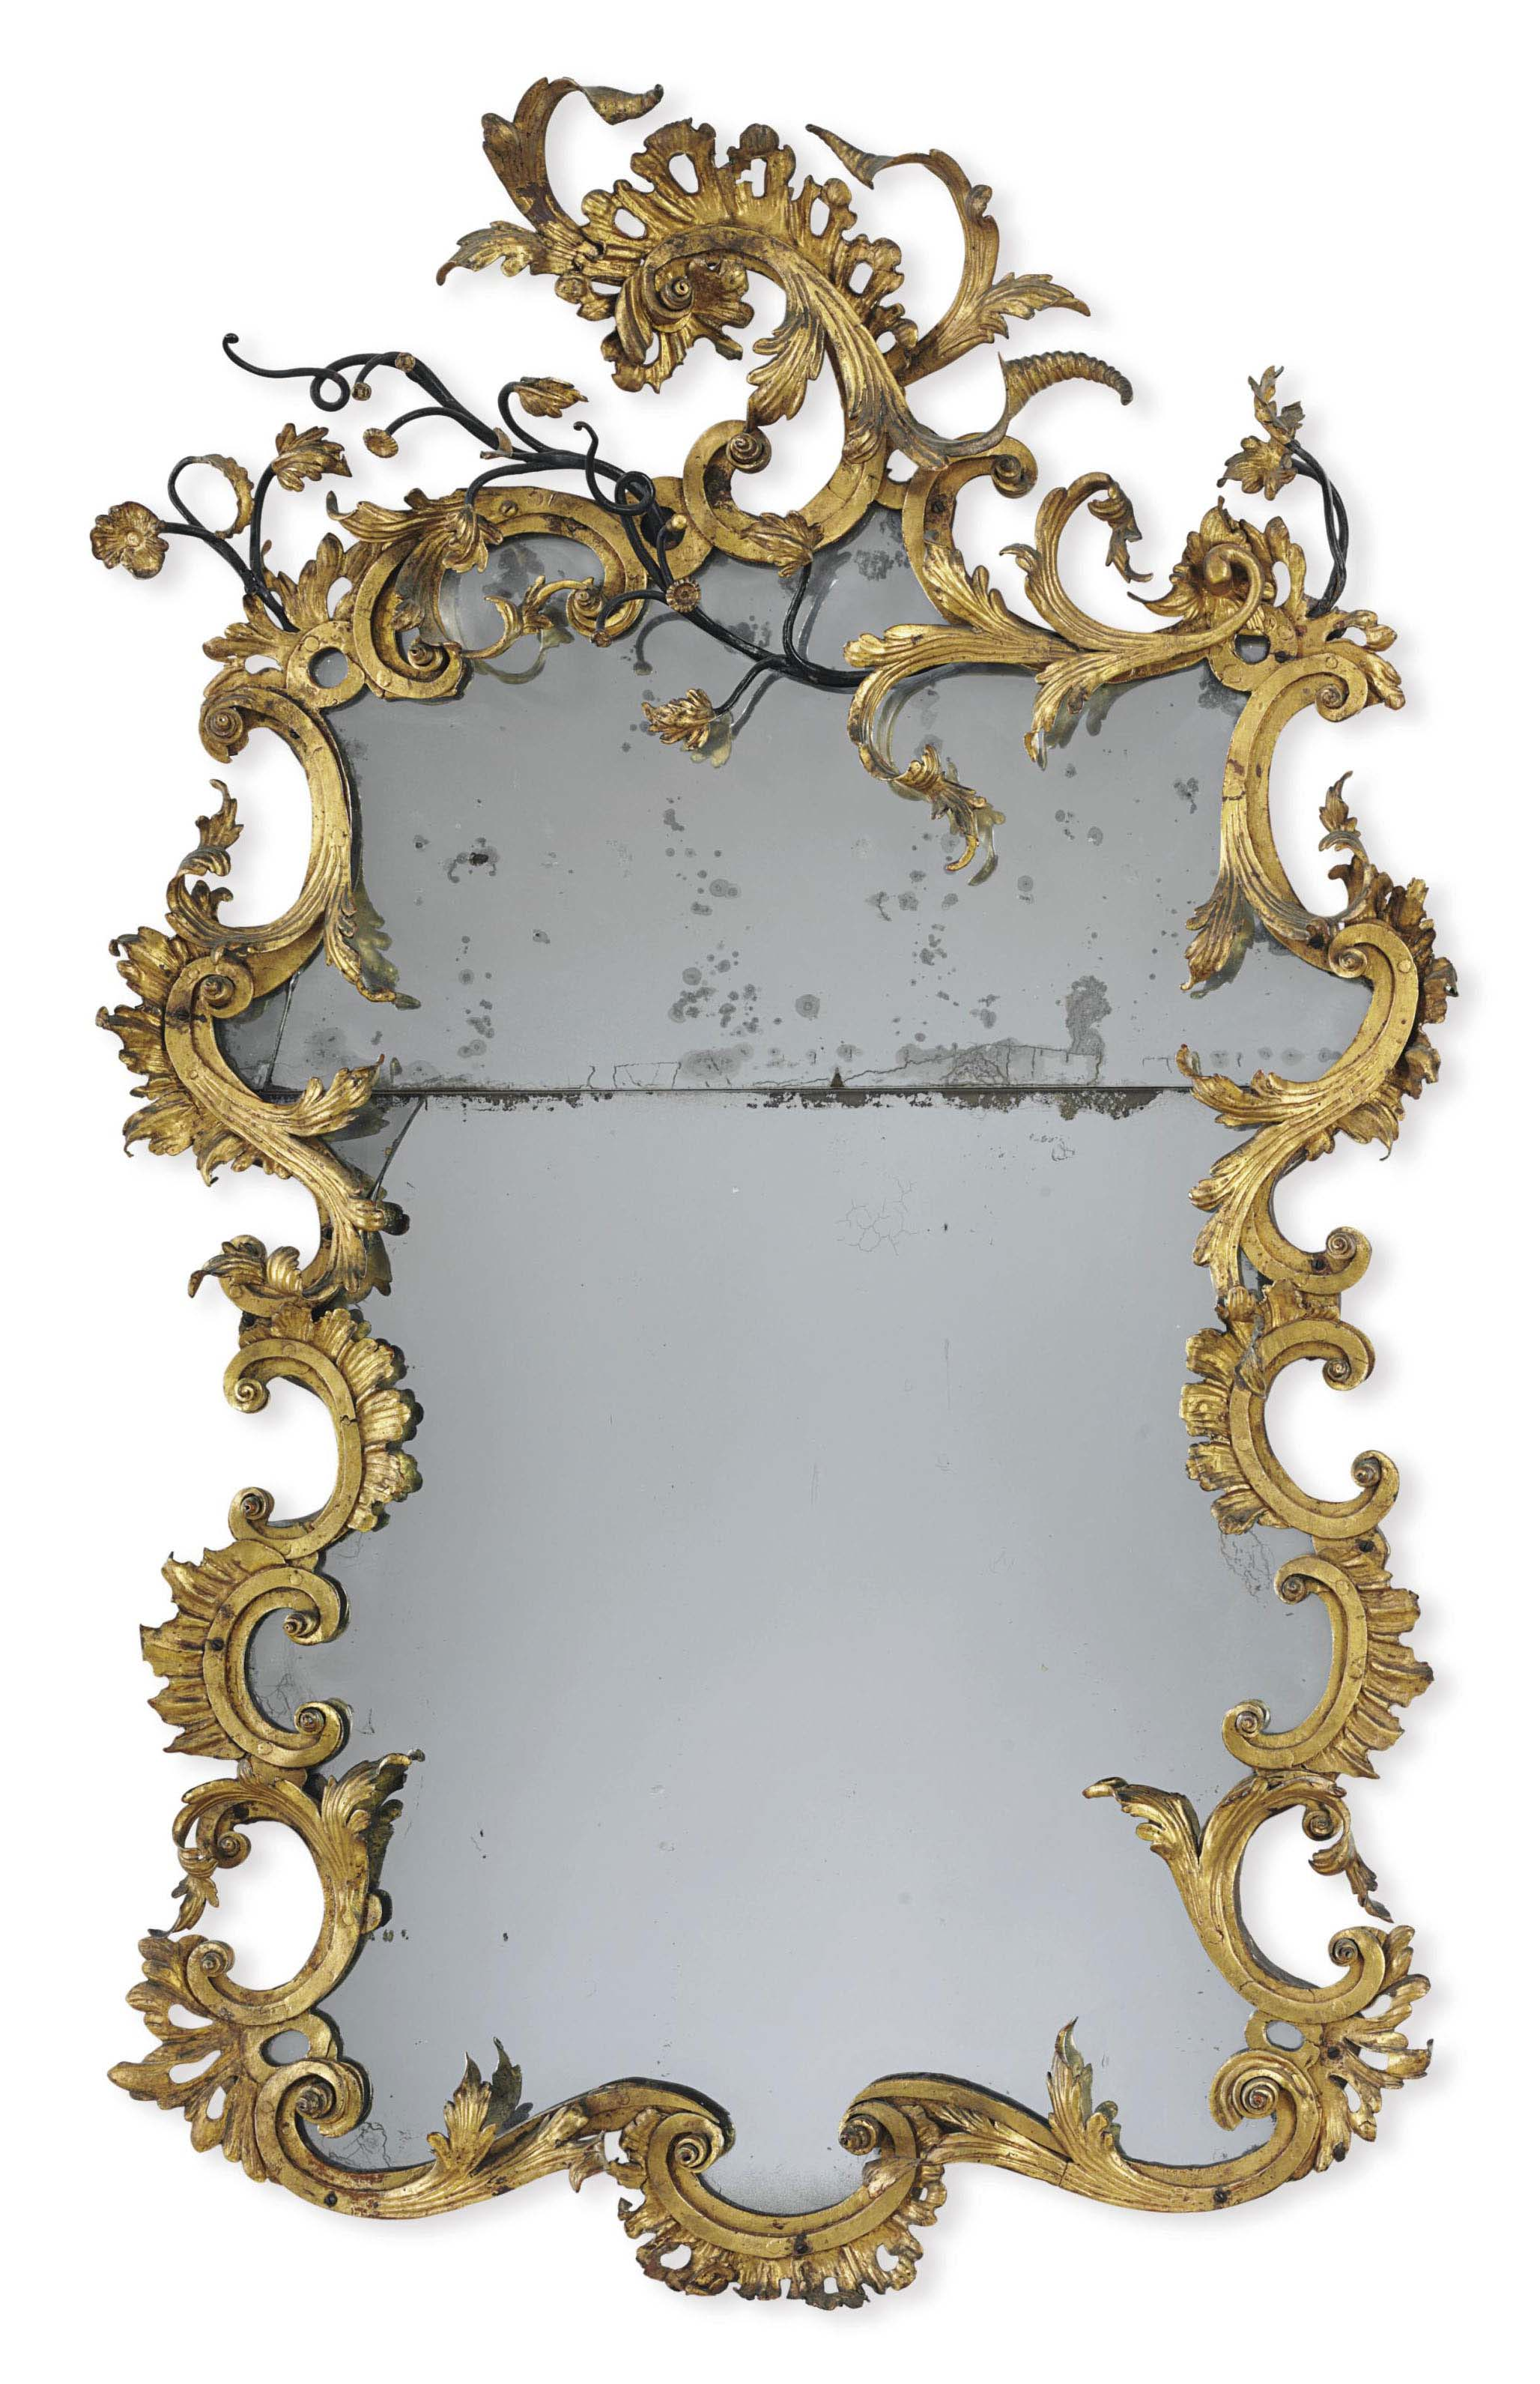 A LOUIS XV GILT-TOLE AND WROUGHT-IRON MIRROR